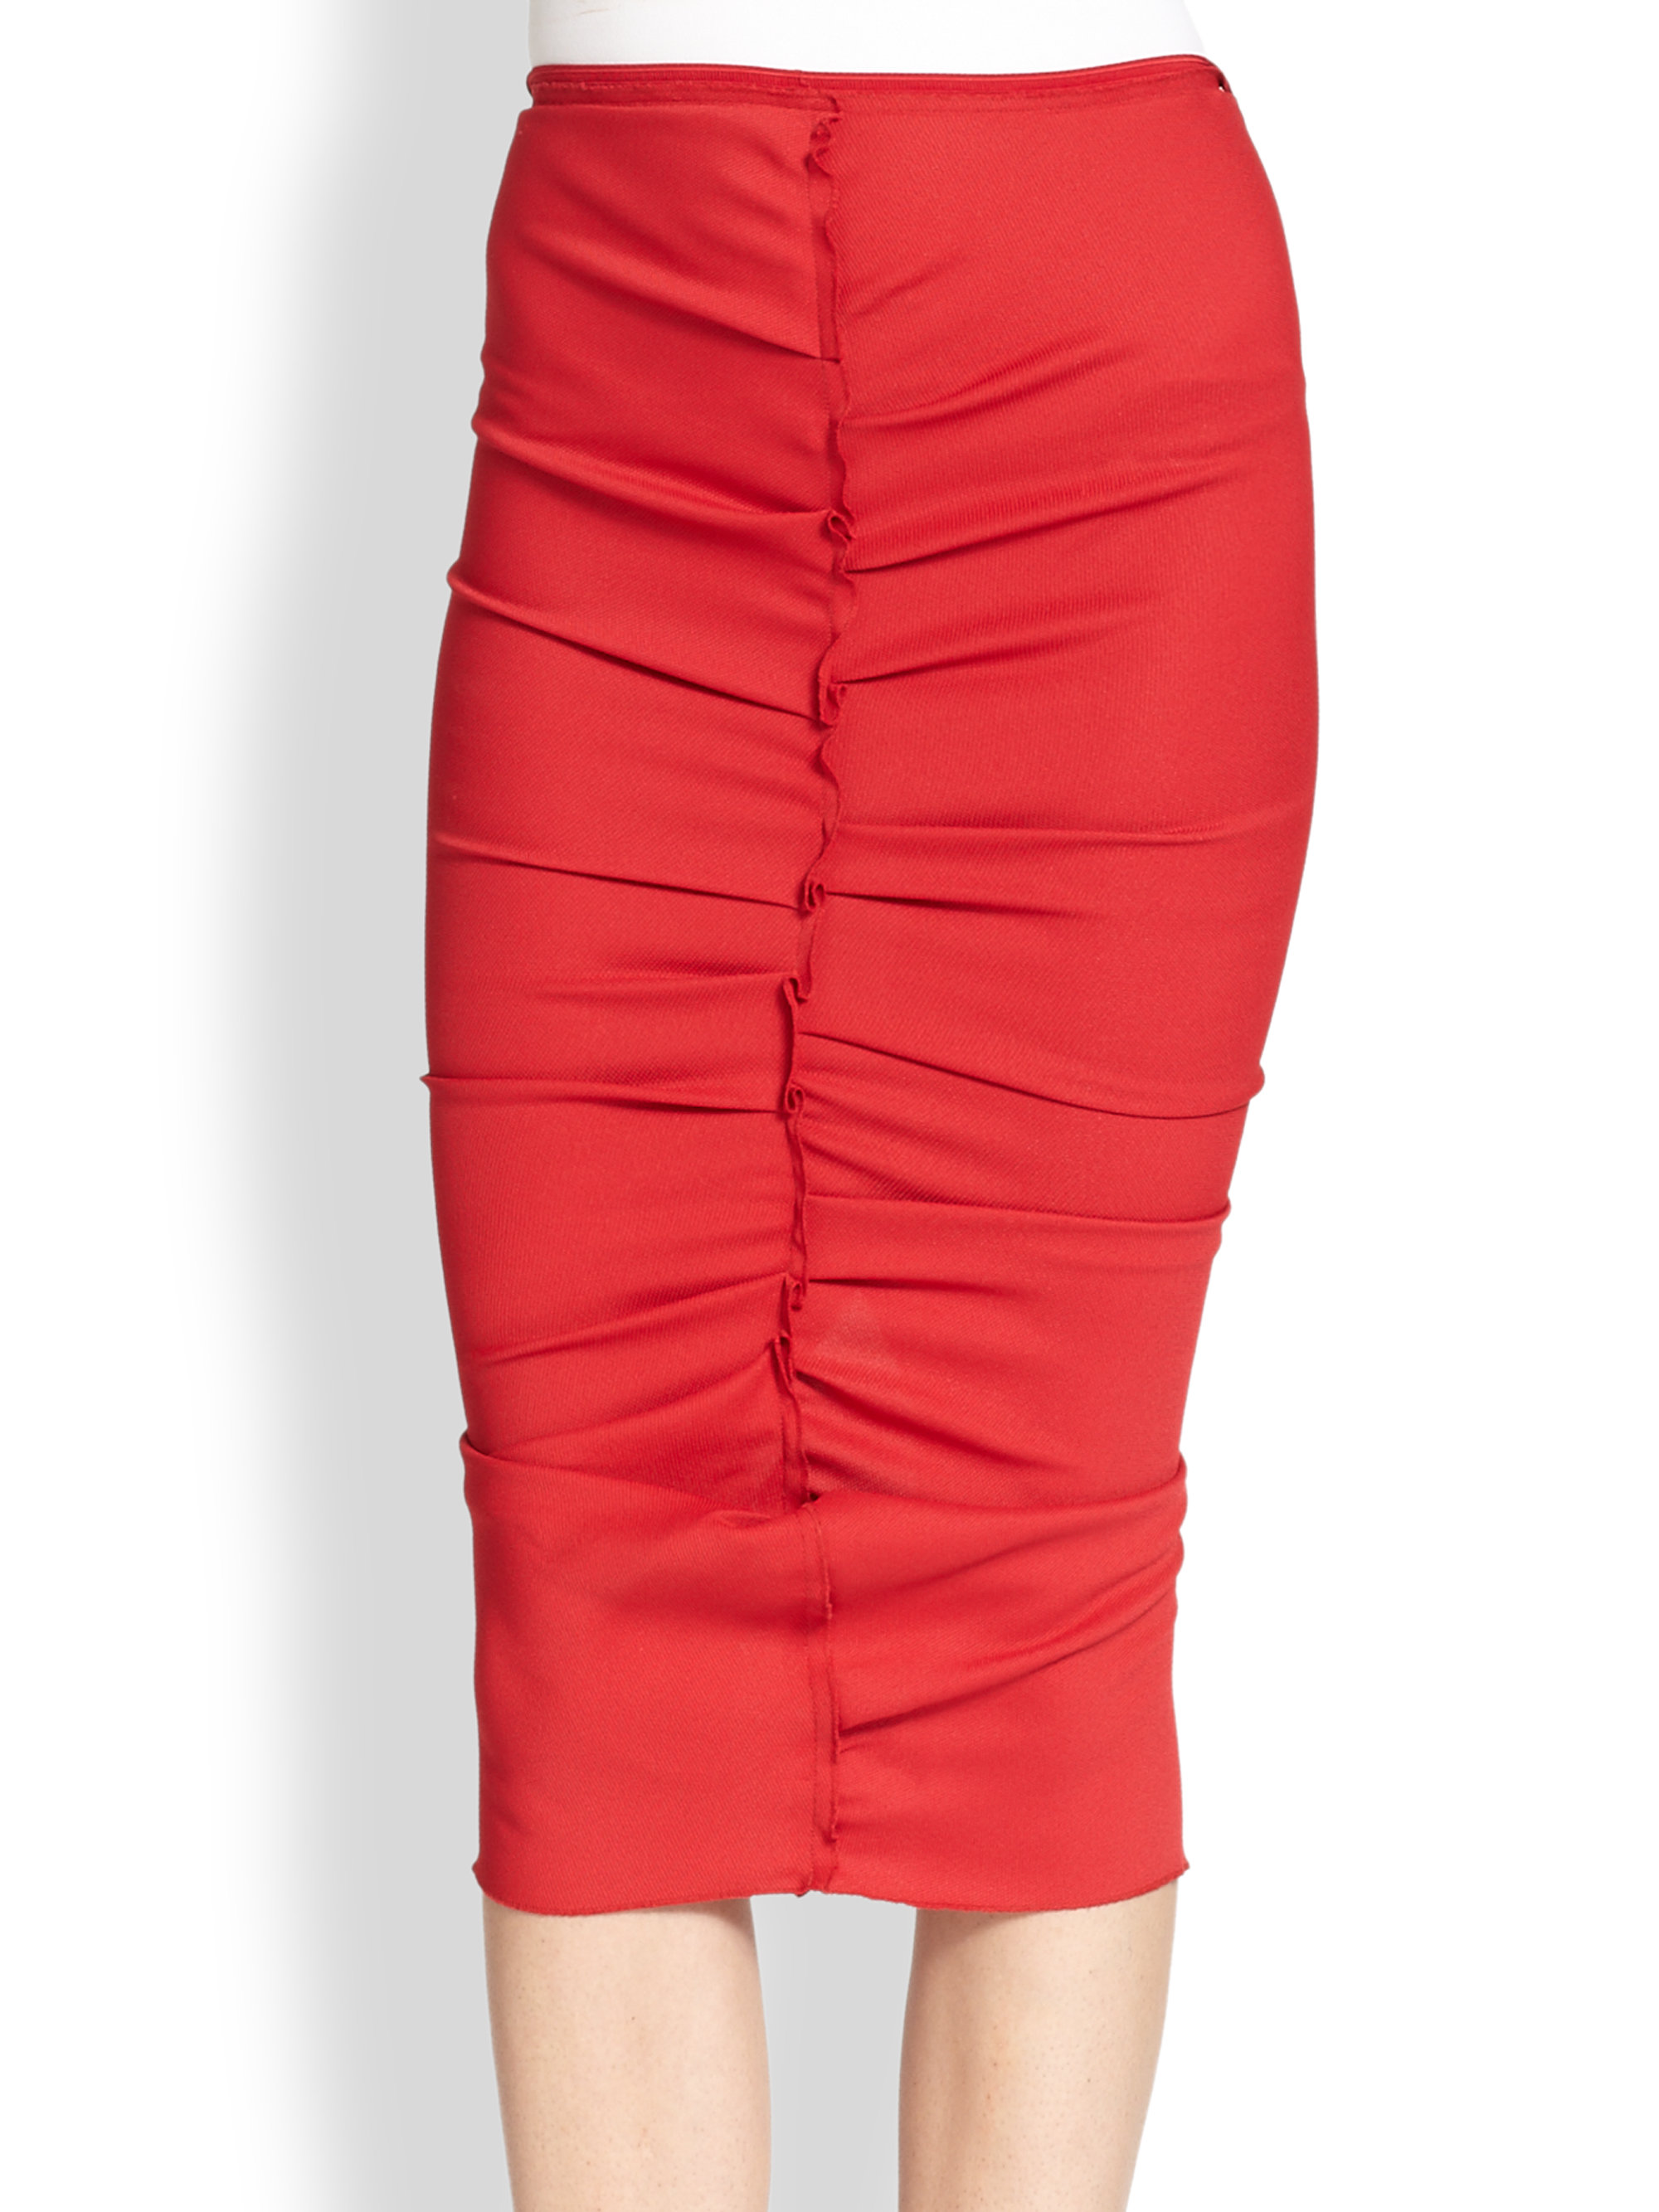 ricci gathered stretch jersey pencil skirt in lyst